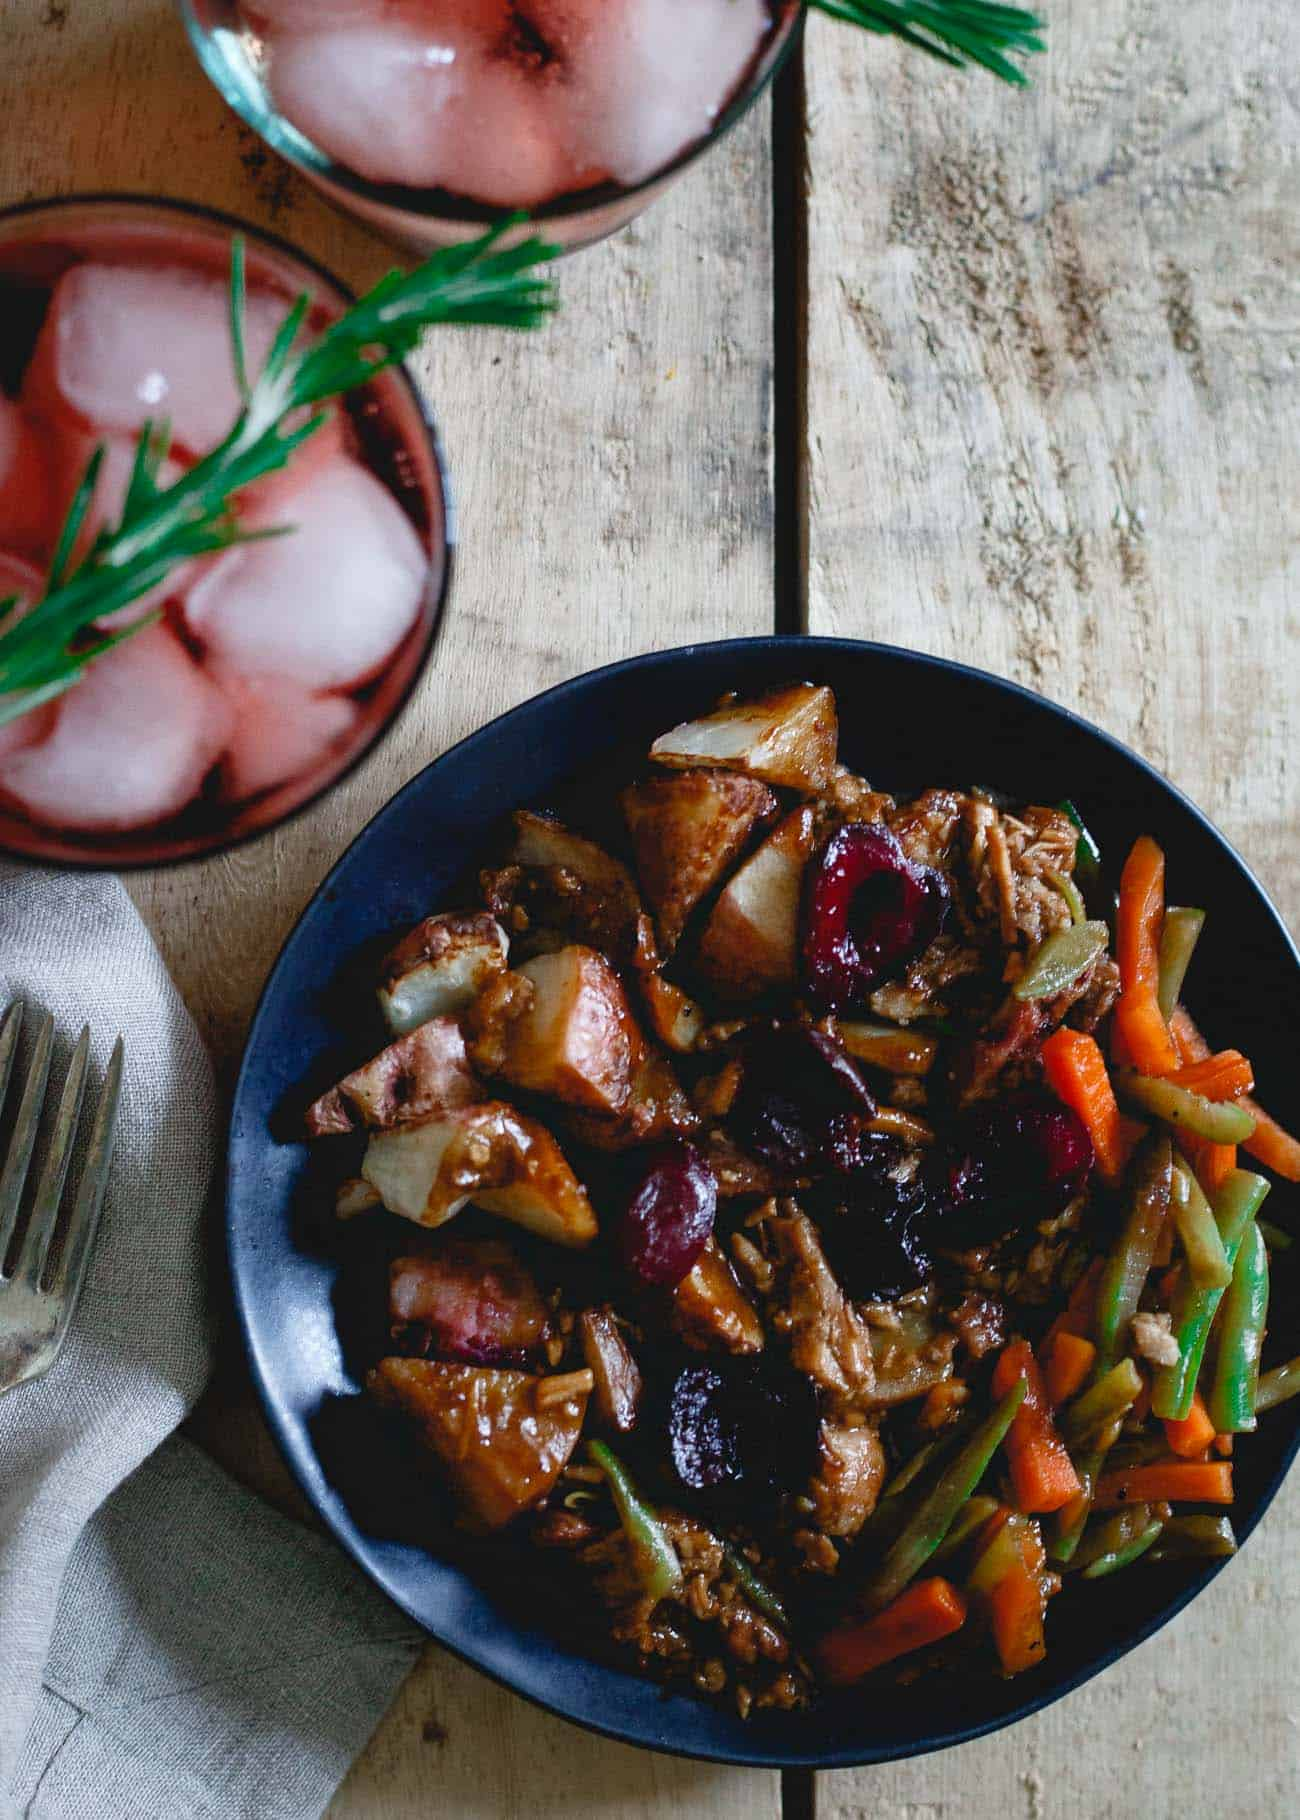 This tart cherry red wine spritzer is the perfect accompaniment to this cherry port pork dinner.